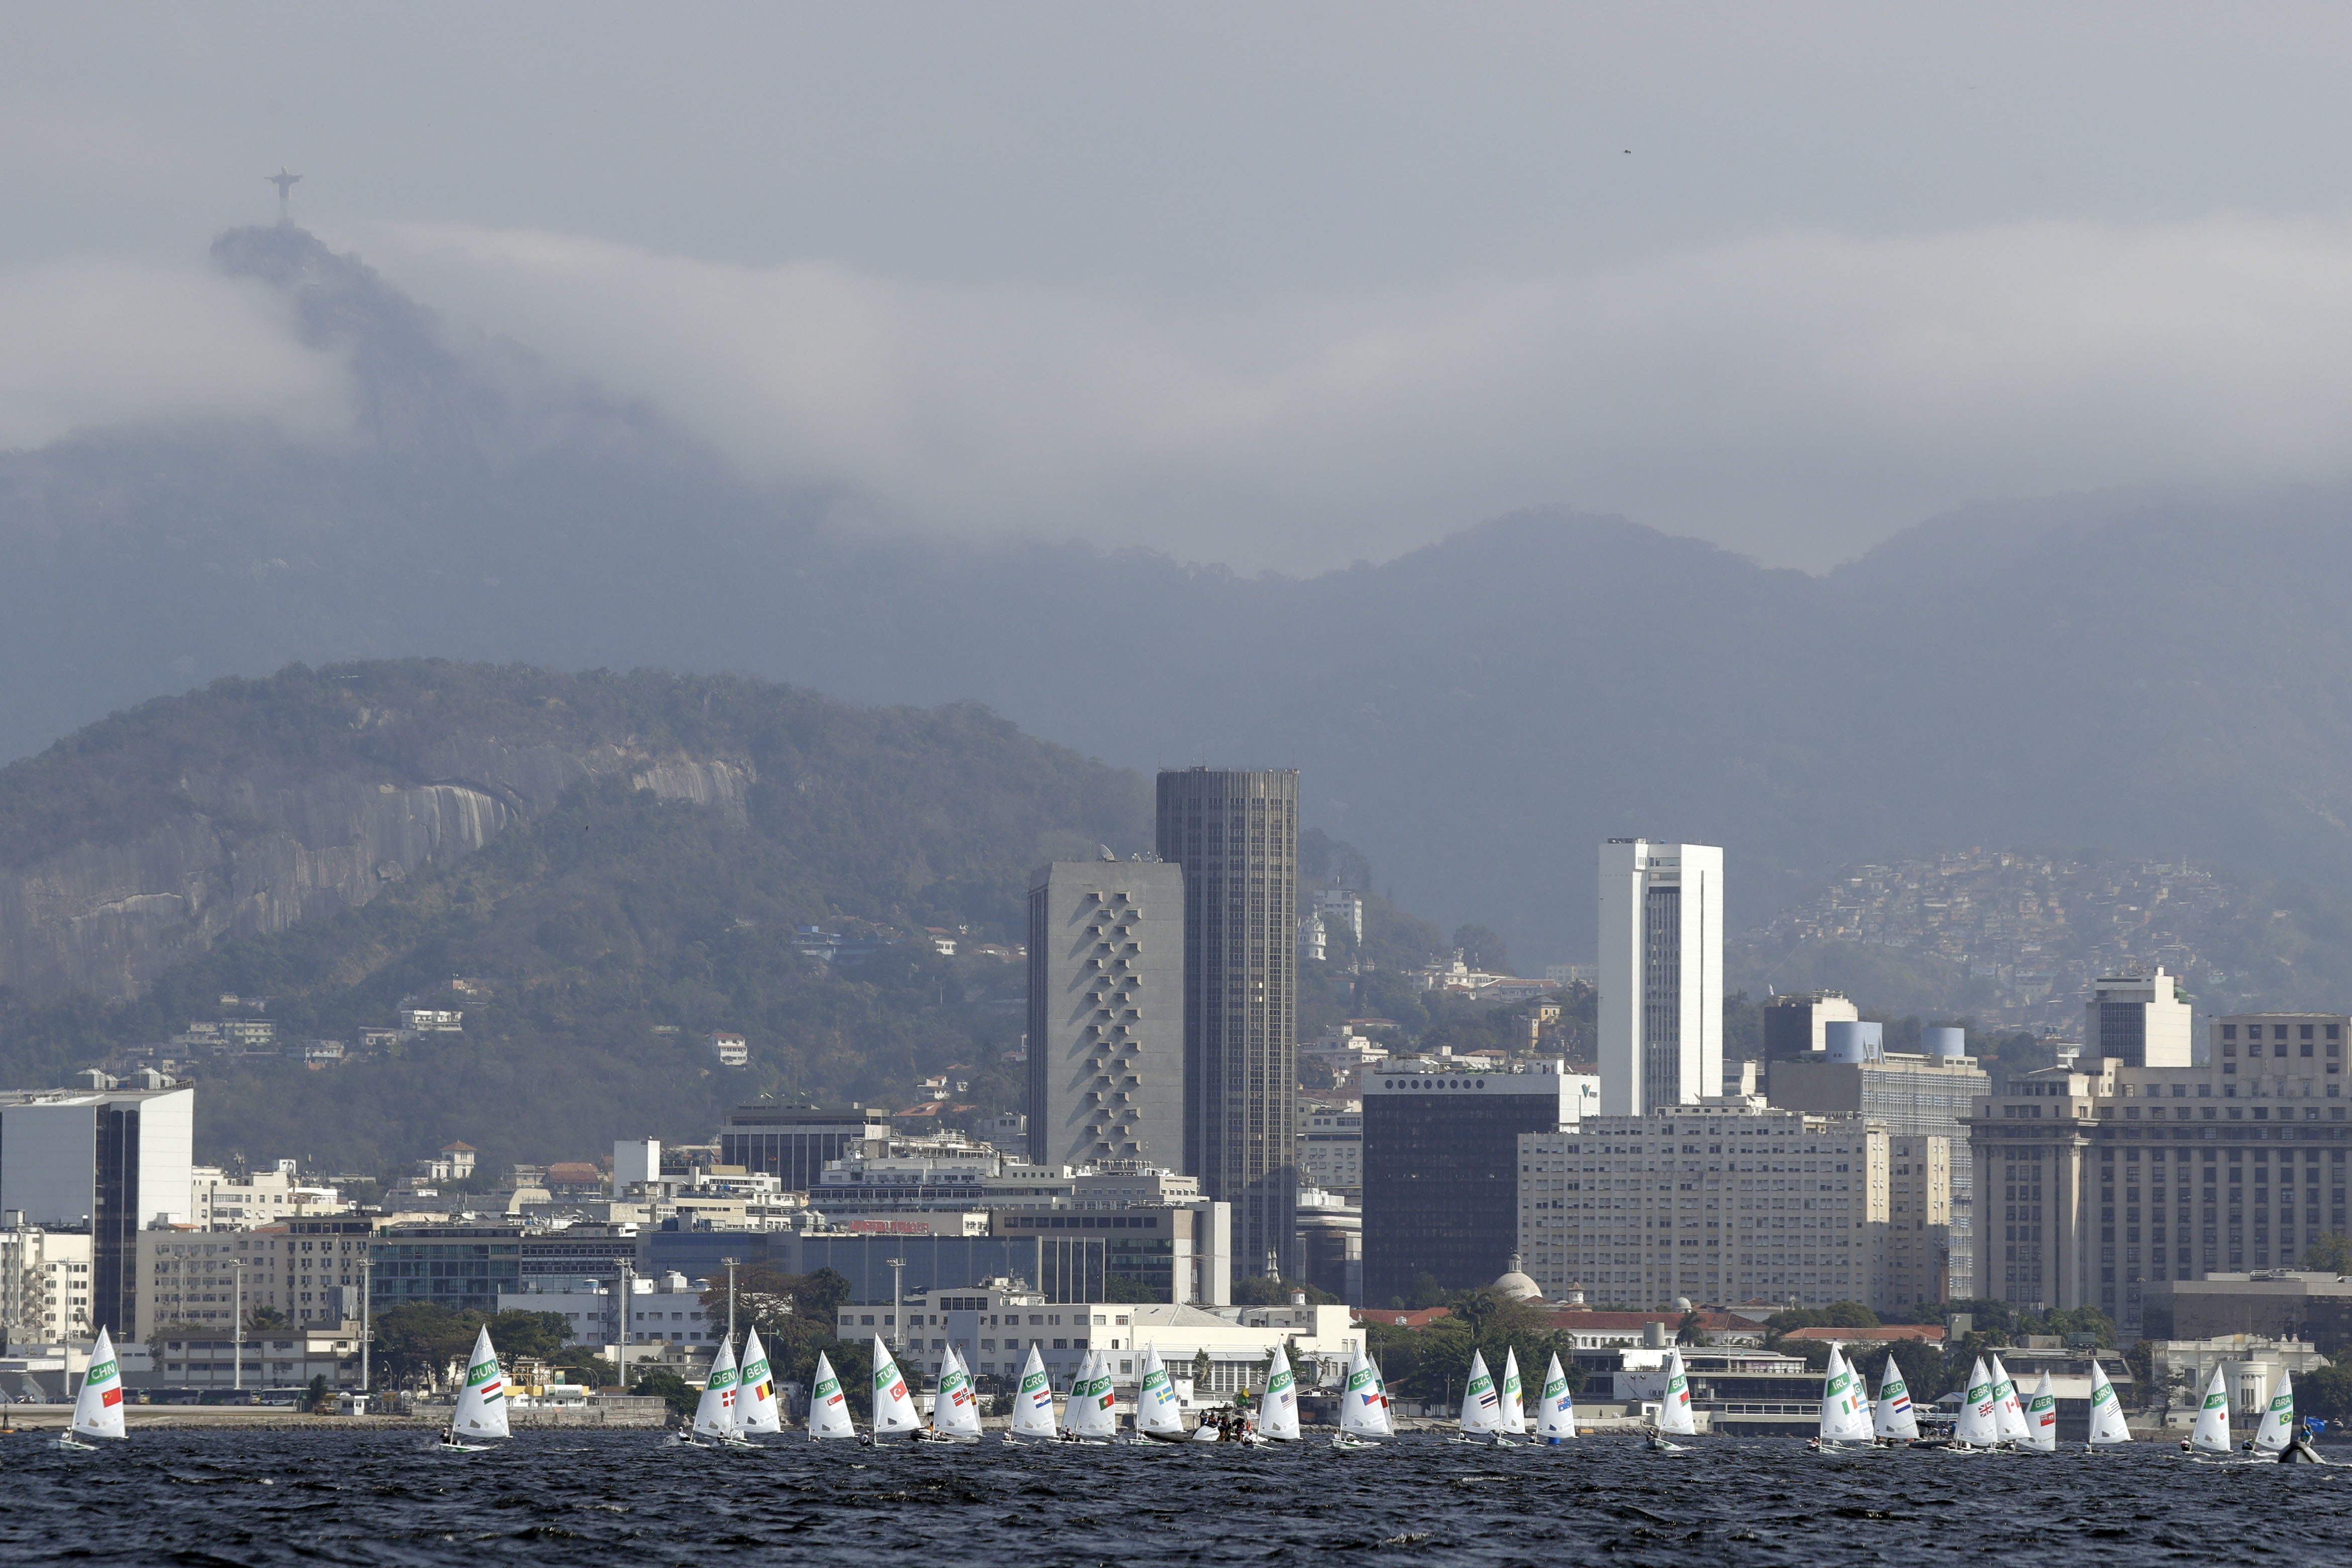 Athletes sail in the Guanabara bay during the Laser Radial women race at the 2016 Summer Olympics in Rio de Janeiro, Brazil, Tuesday, Aug. 9, 2016. (AP Photo/Gregorio Borgia)